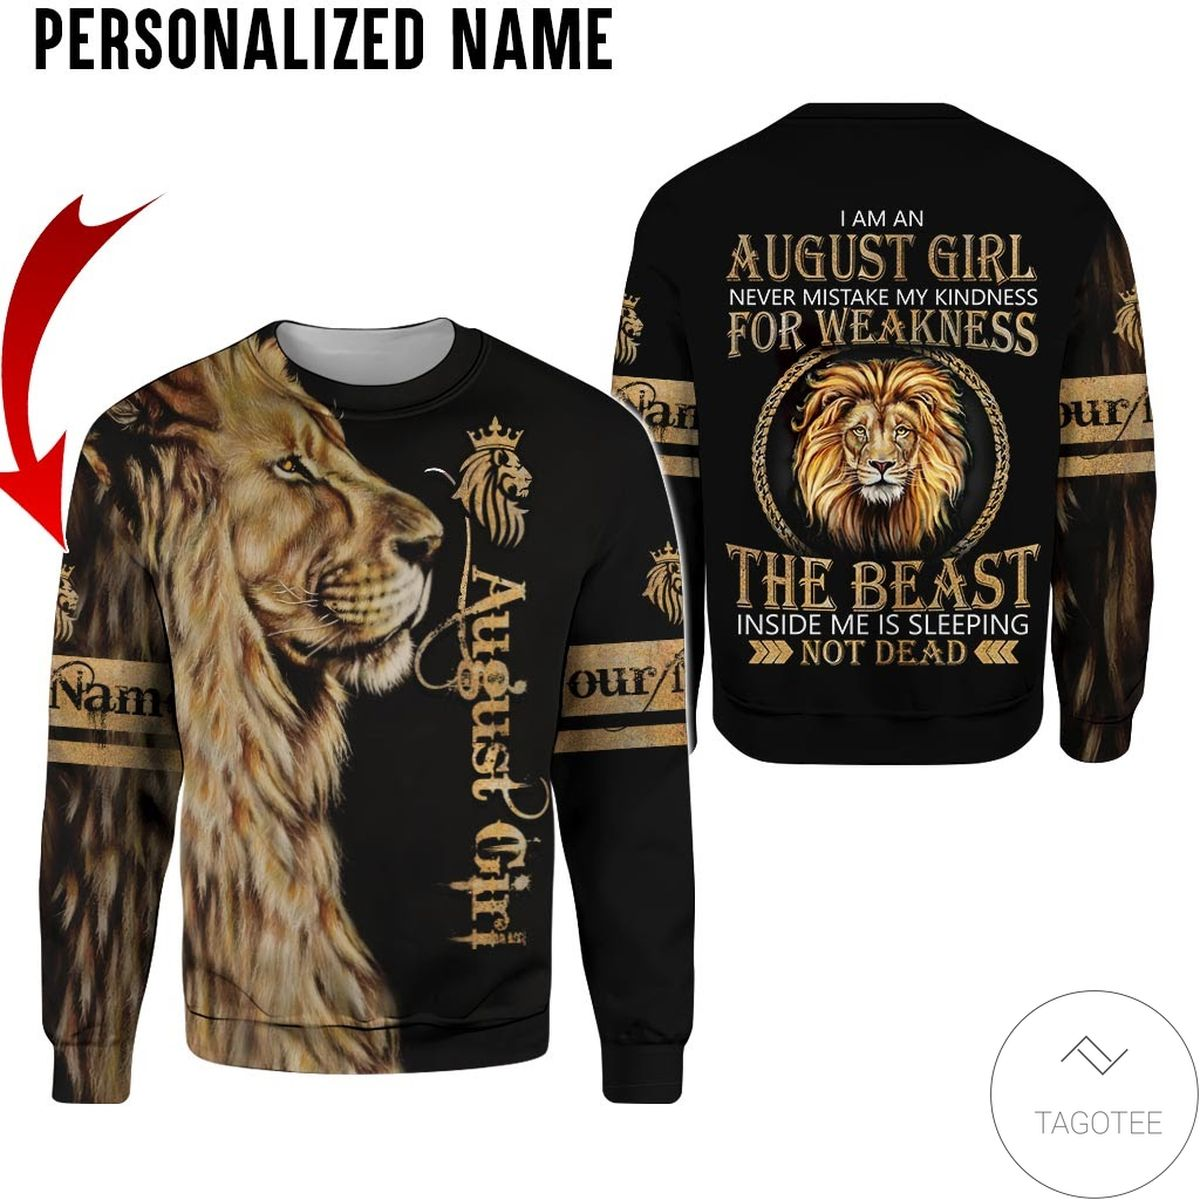 Personalized Name October Girl Sugar Skull Hated By Many Loved By Plenty All Over Print Hoodiex